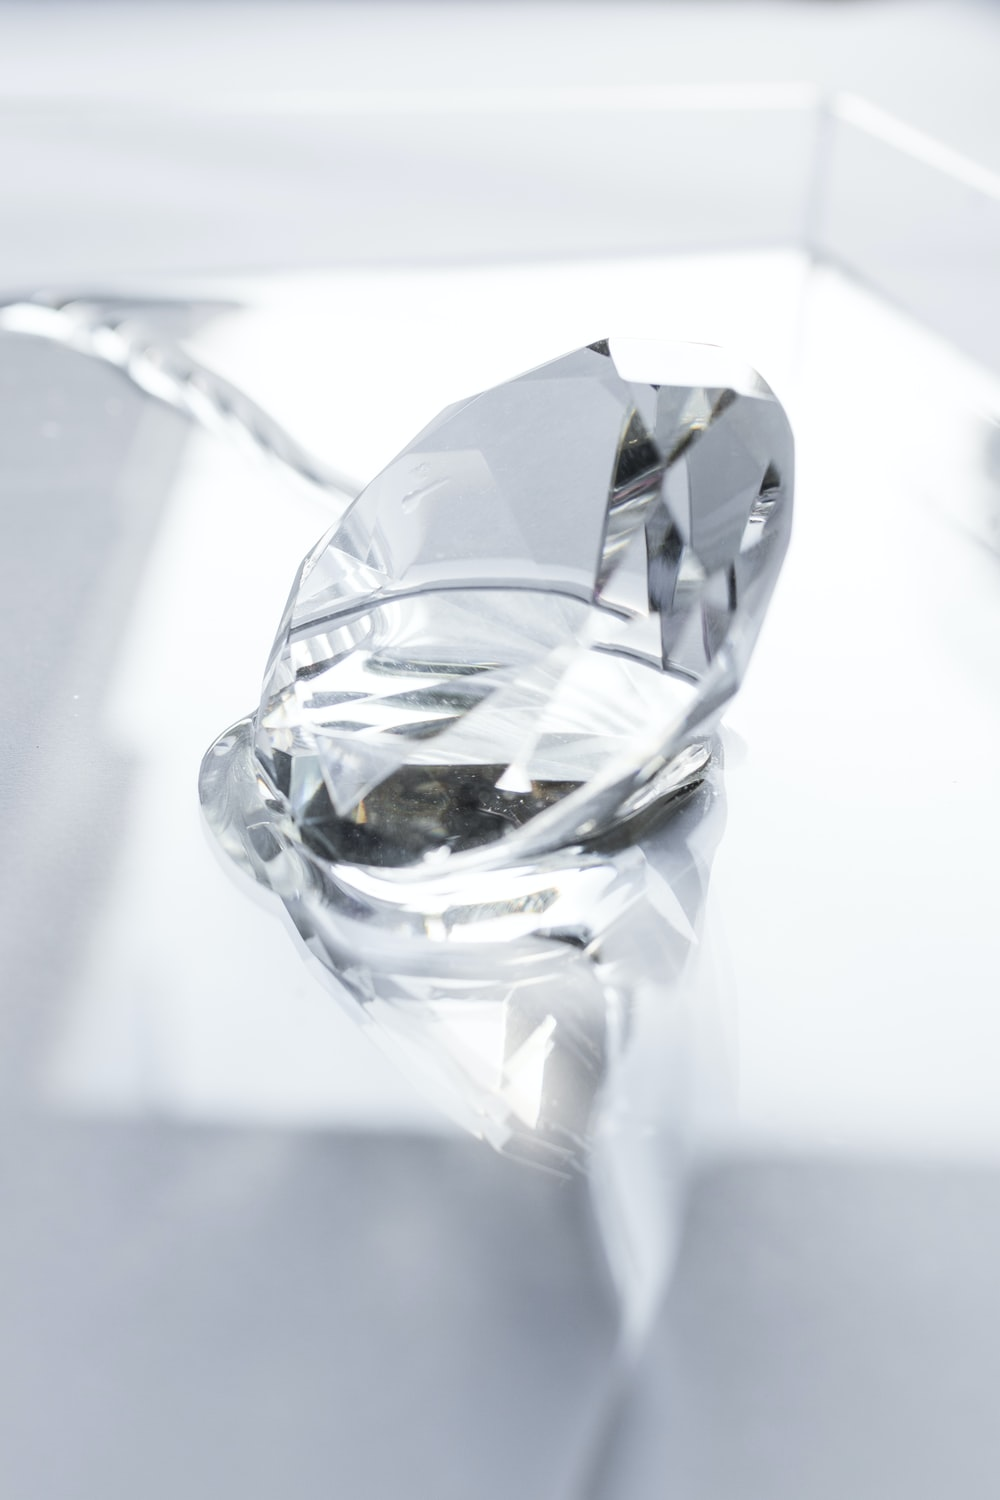 clear crystal on white surface